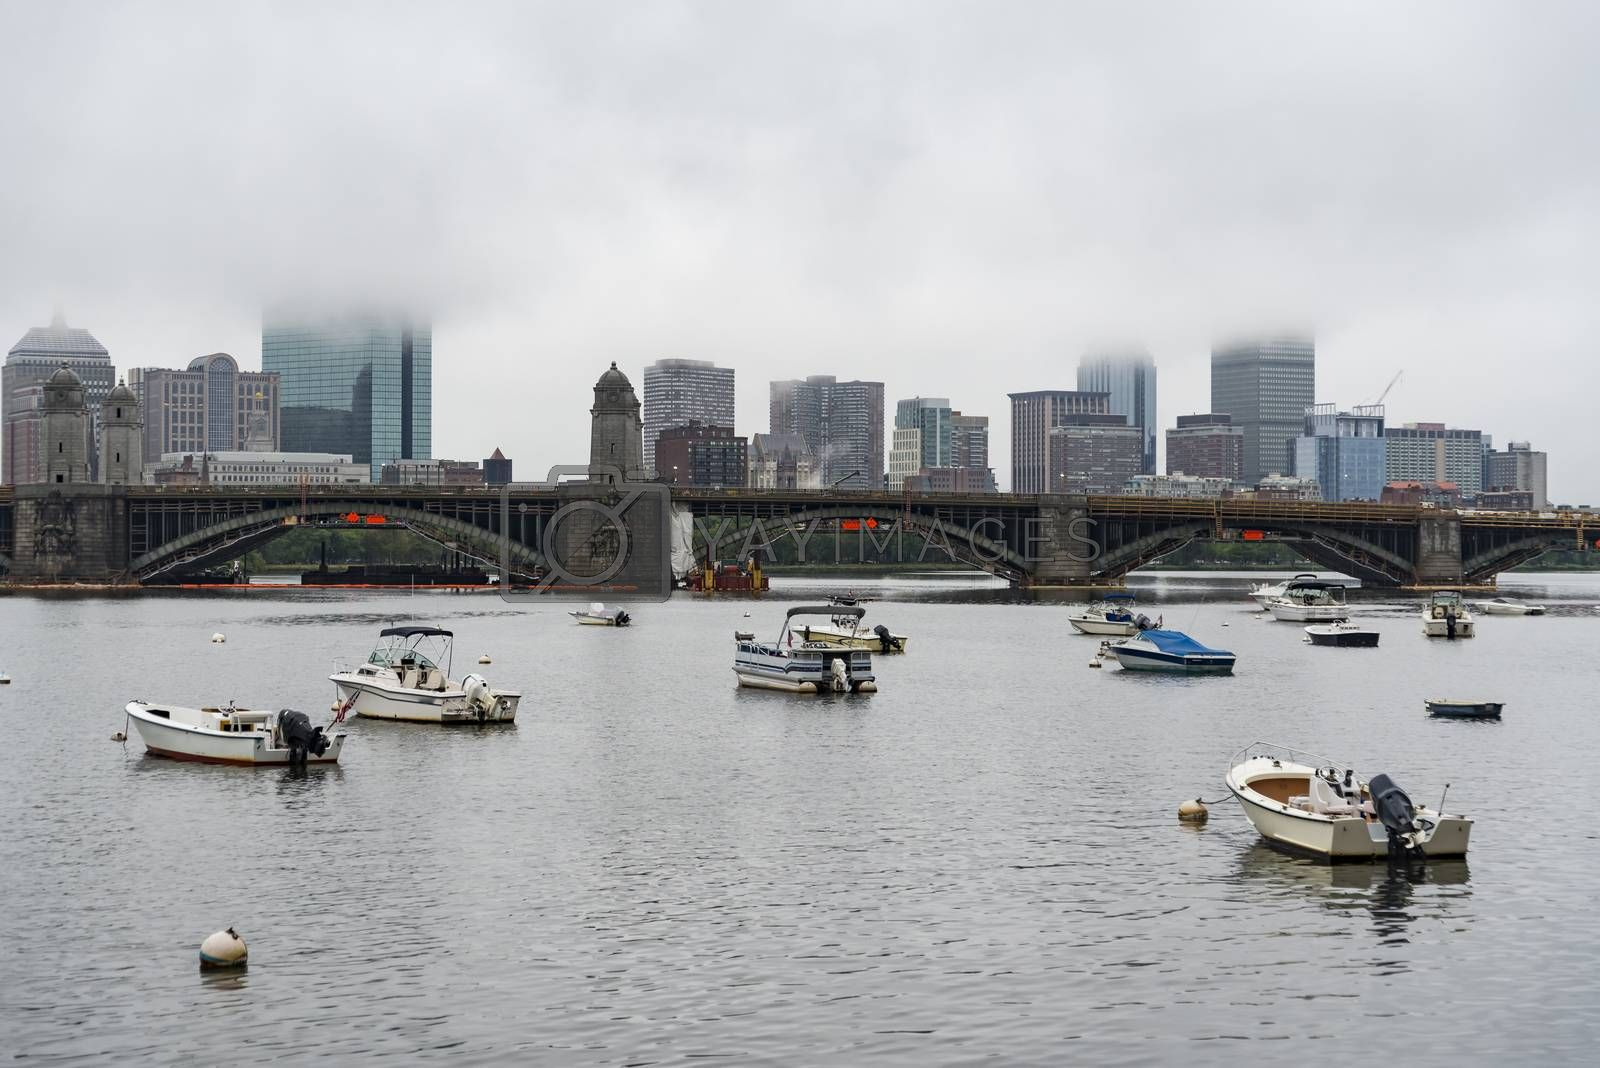 Skyline of downtown Boston with the fog, MA USA